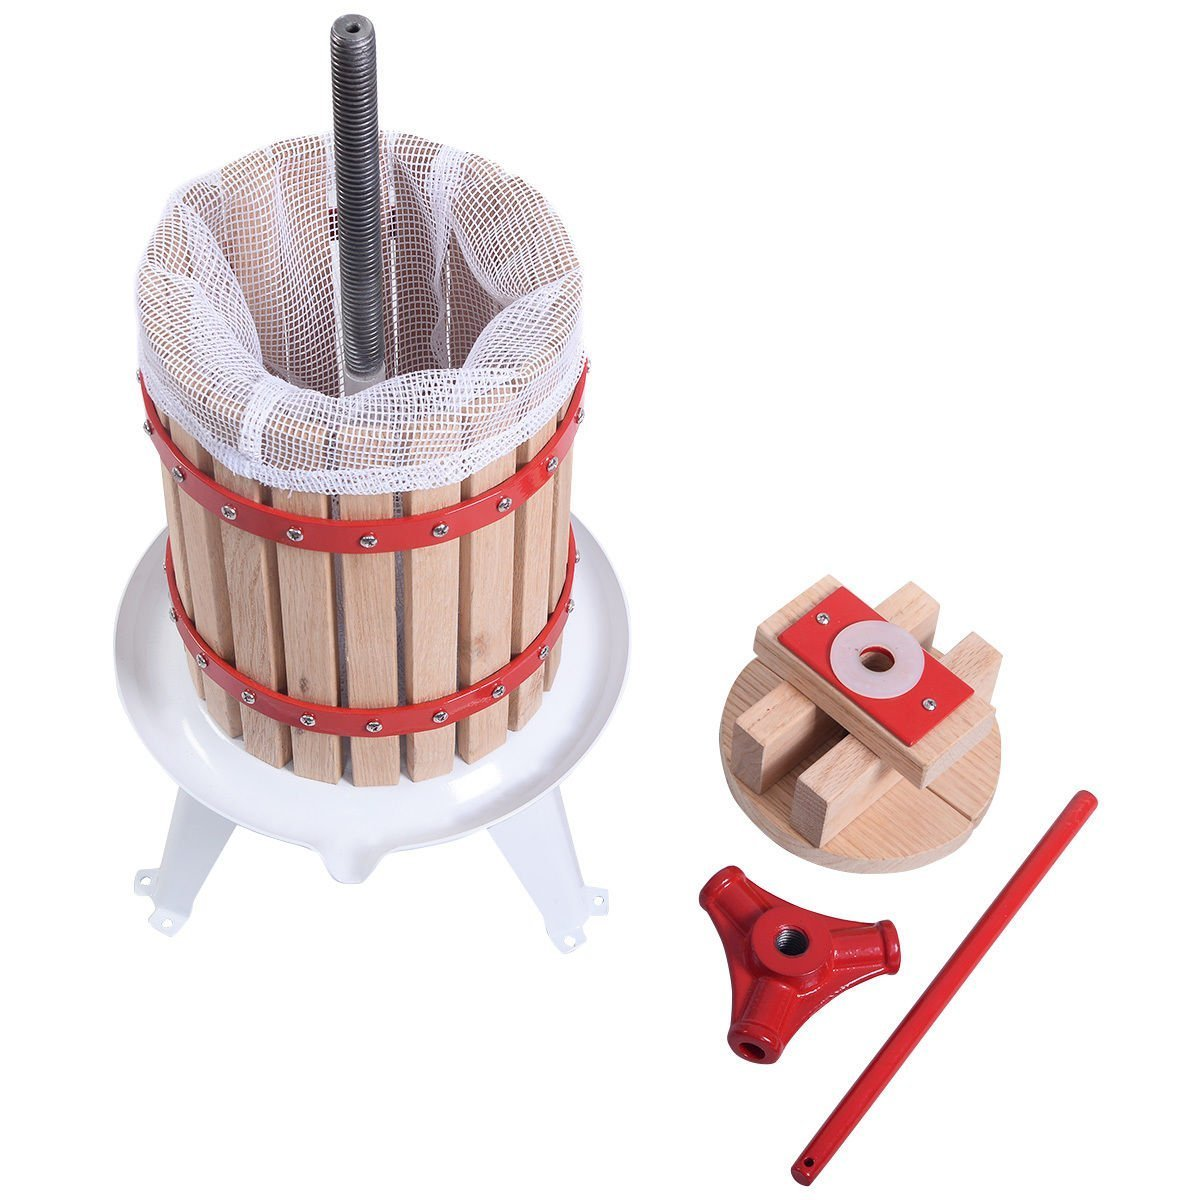 Useful UH-FP165 1.6 Gallon Solid Wood Basket Fruit and wine Press by Useful. (Image #2)